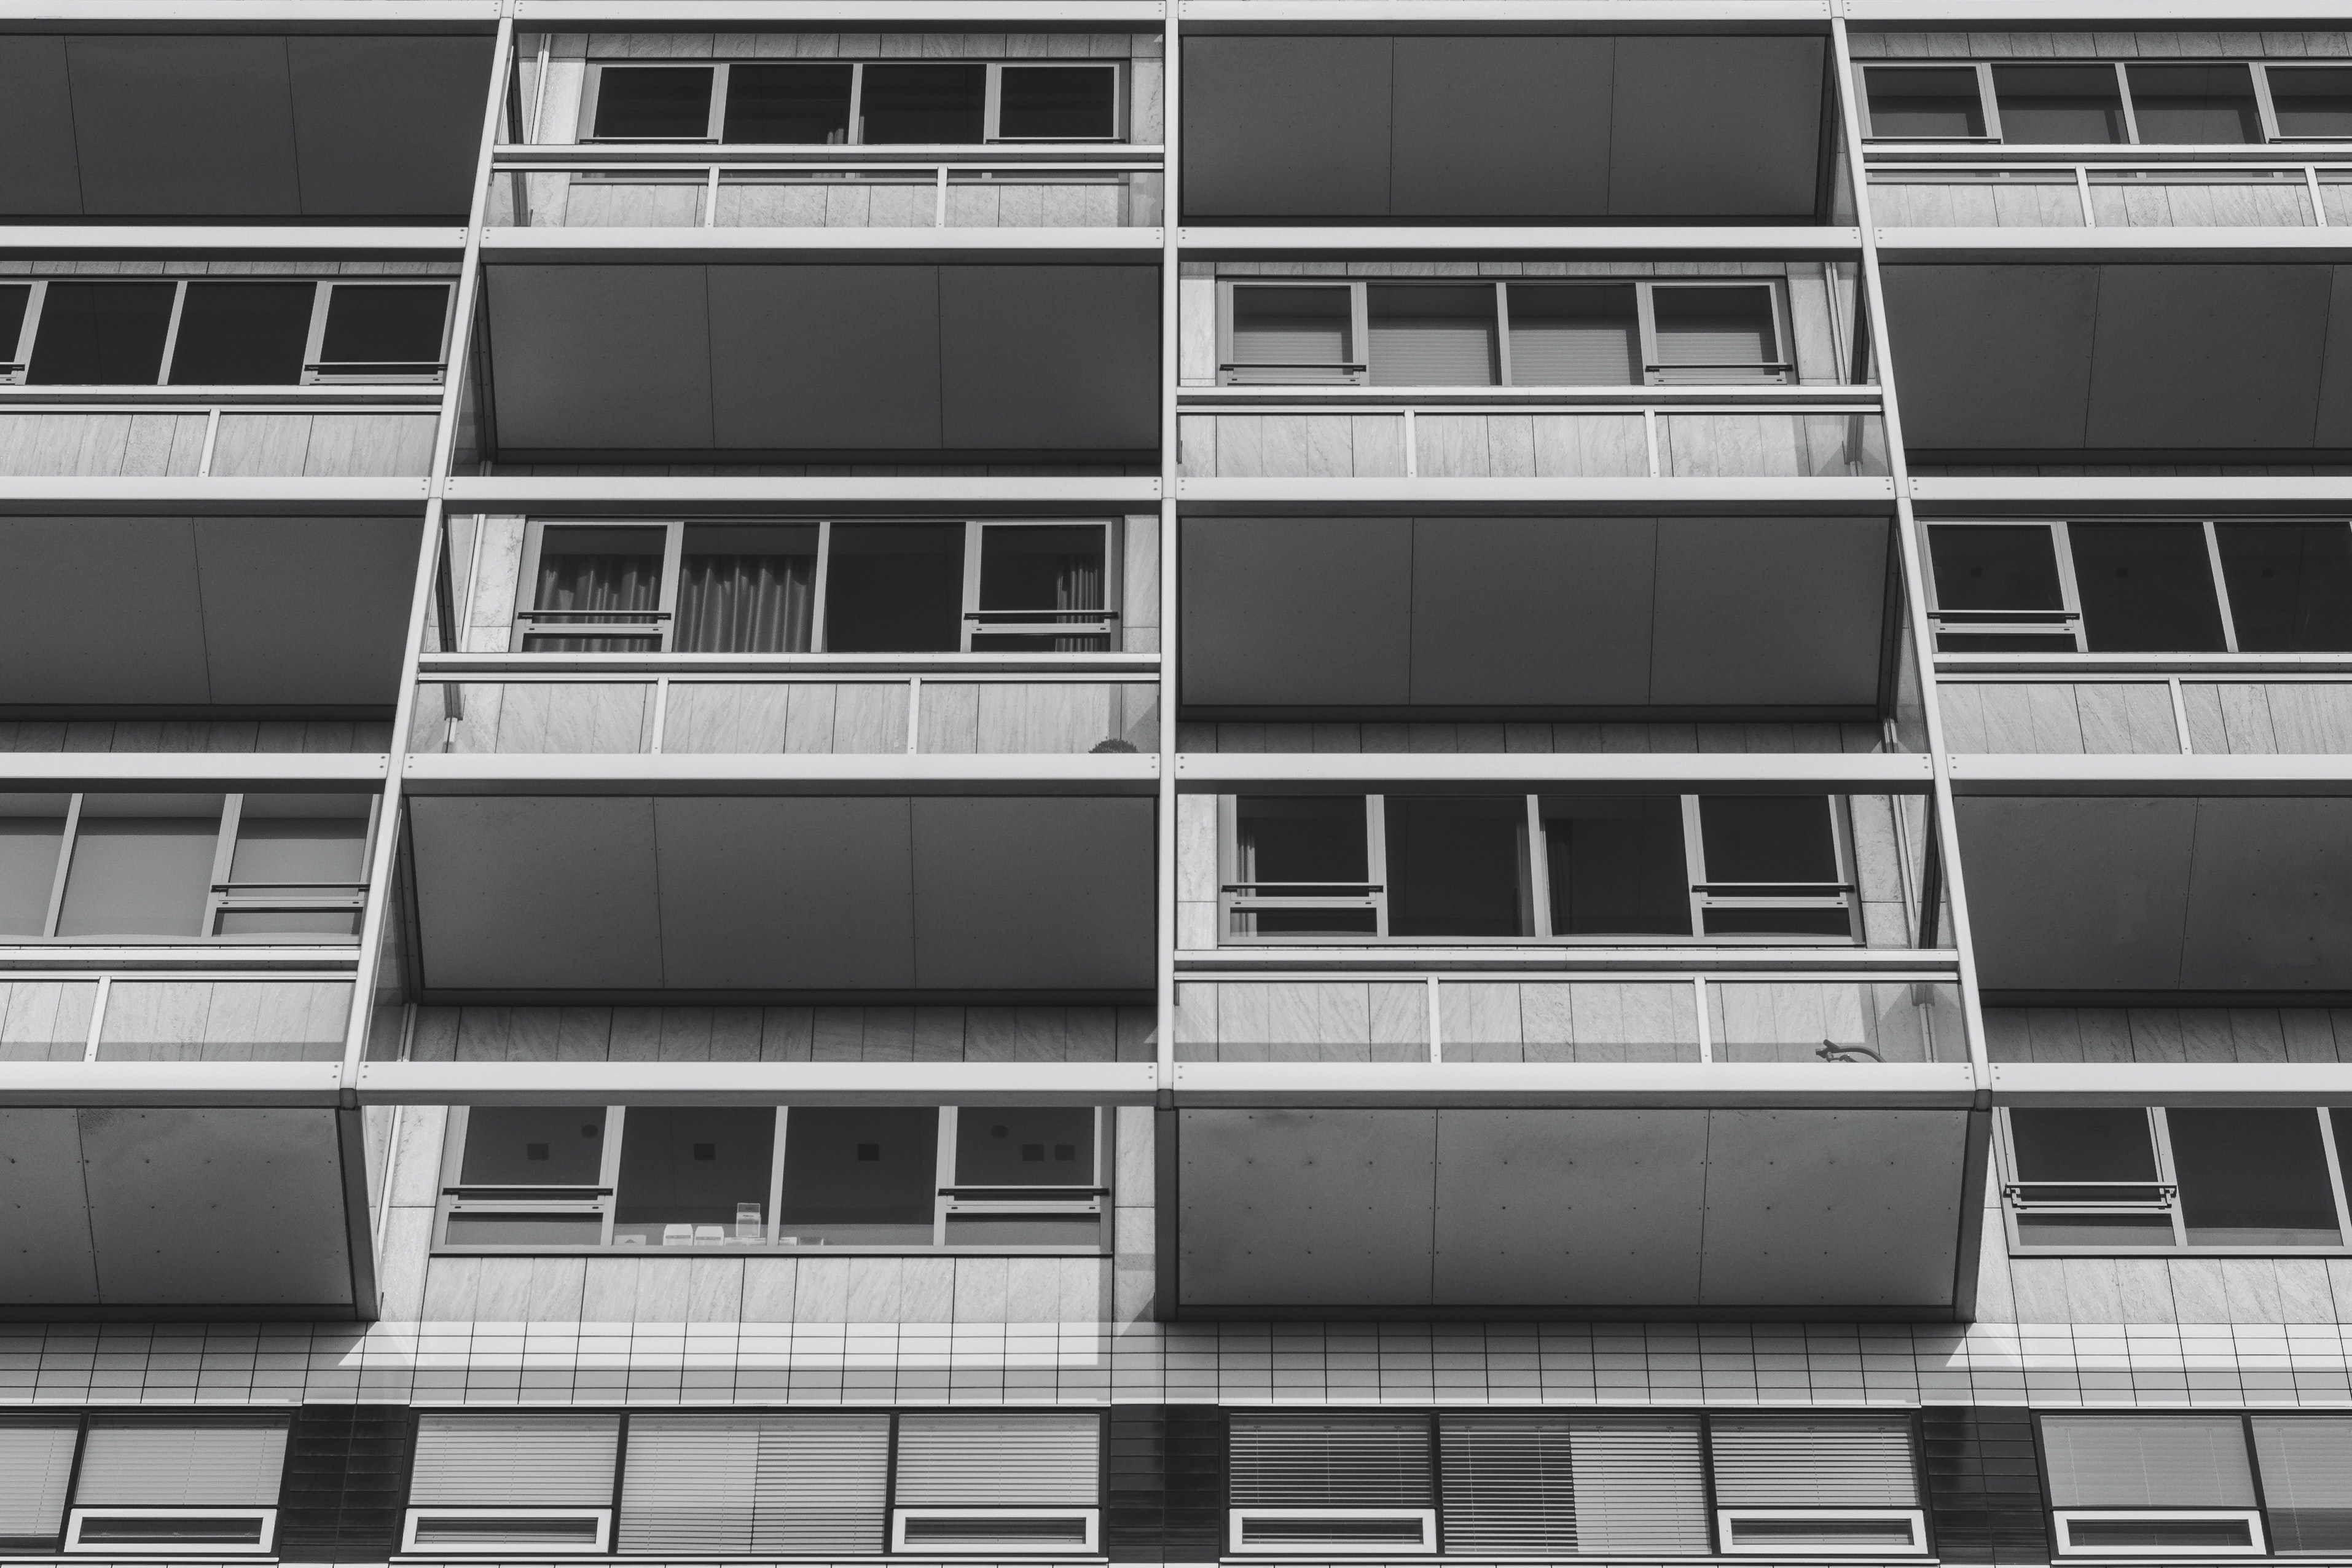 Black and white shot of urban building with balconies and windows